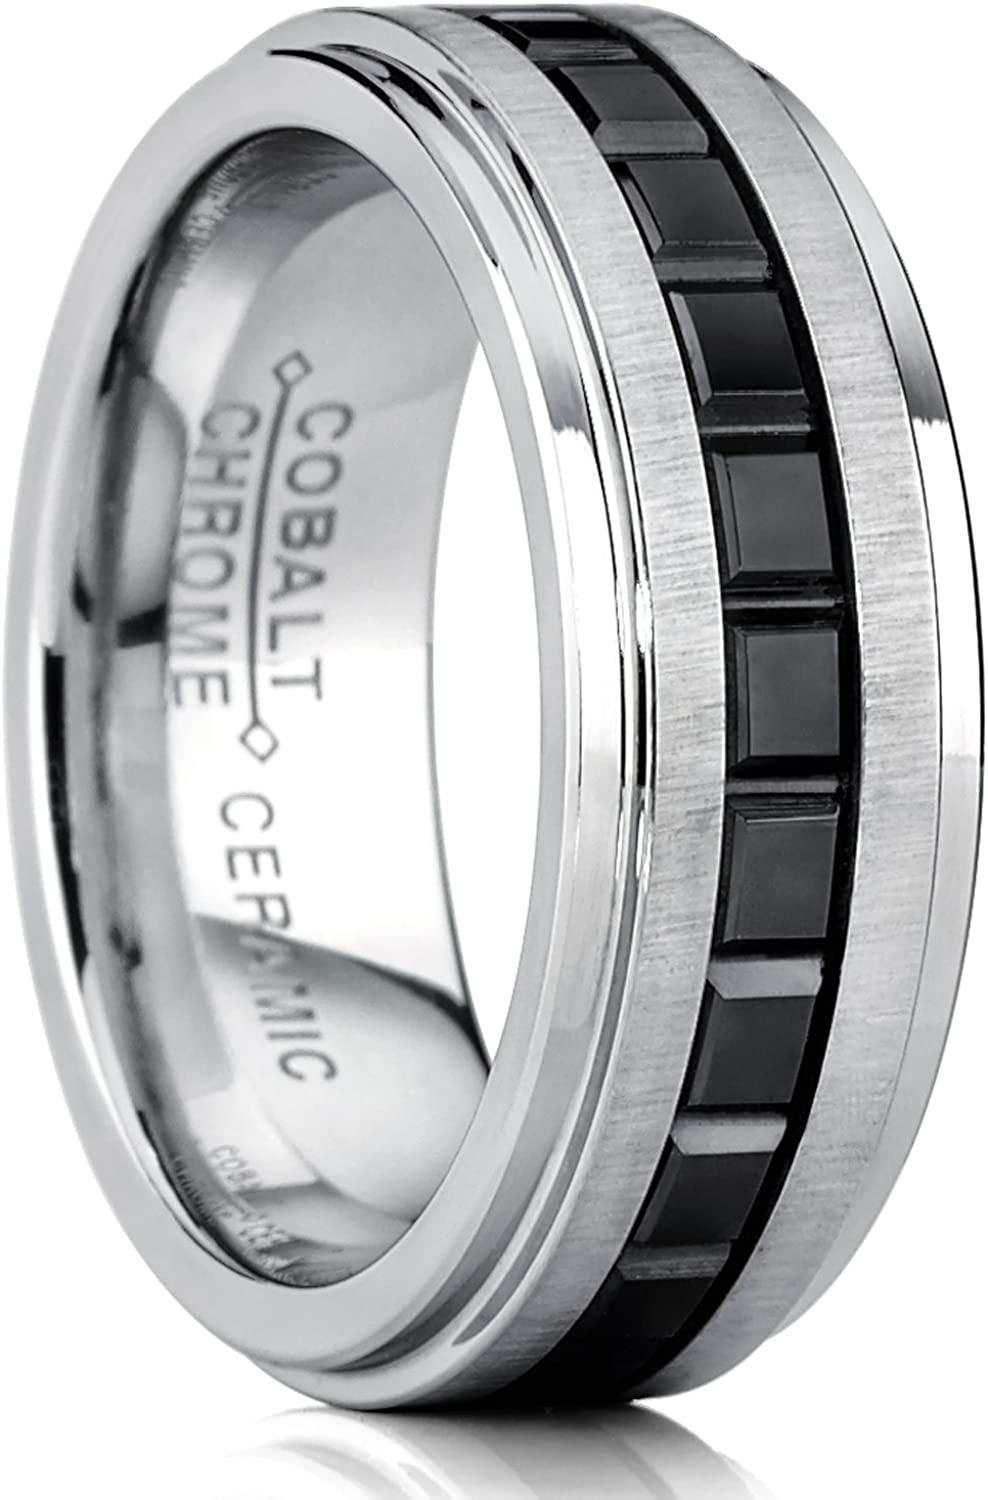 Metal Masters Co. Two Tone Brushed Cobalt Wedding Band Ring with Princess Cut Design Black Ceramic, 8mm Comfort Fit